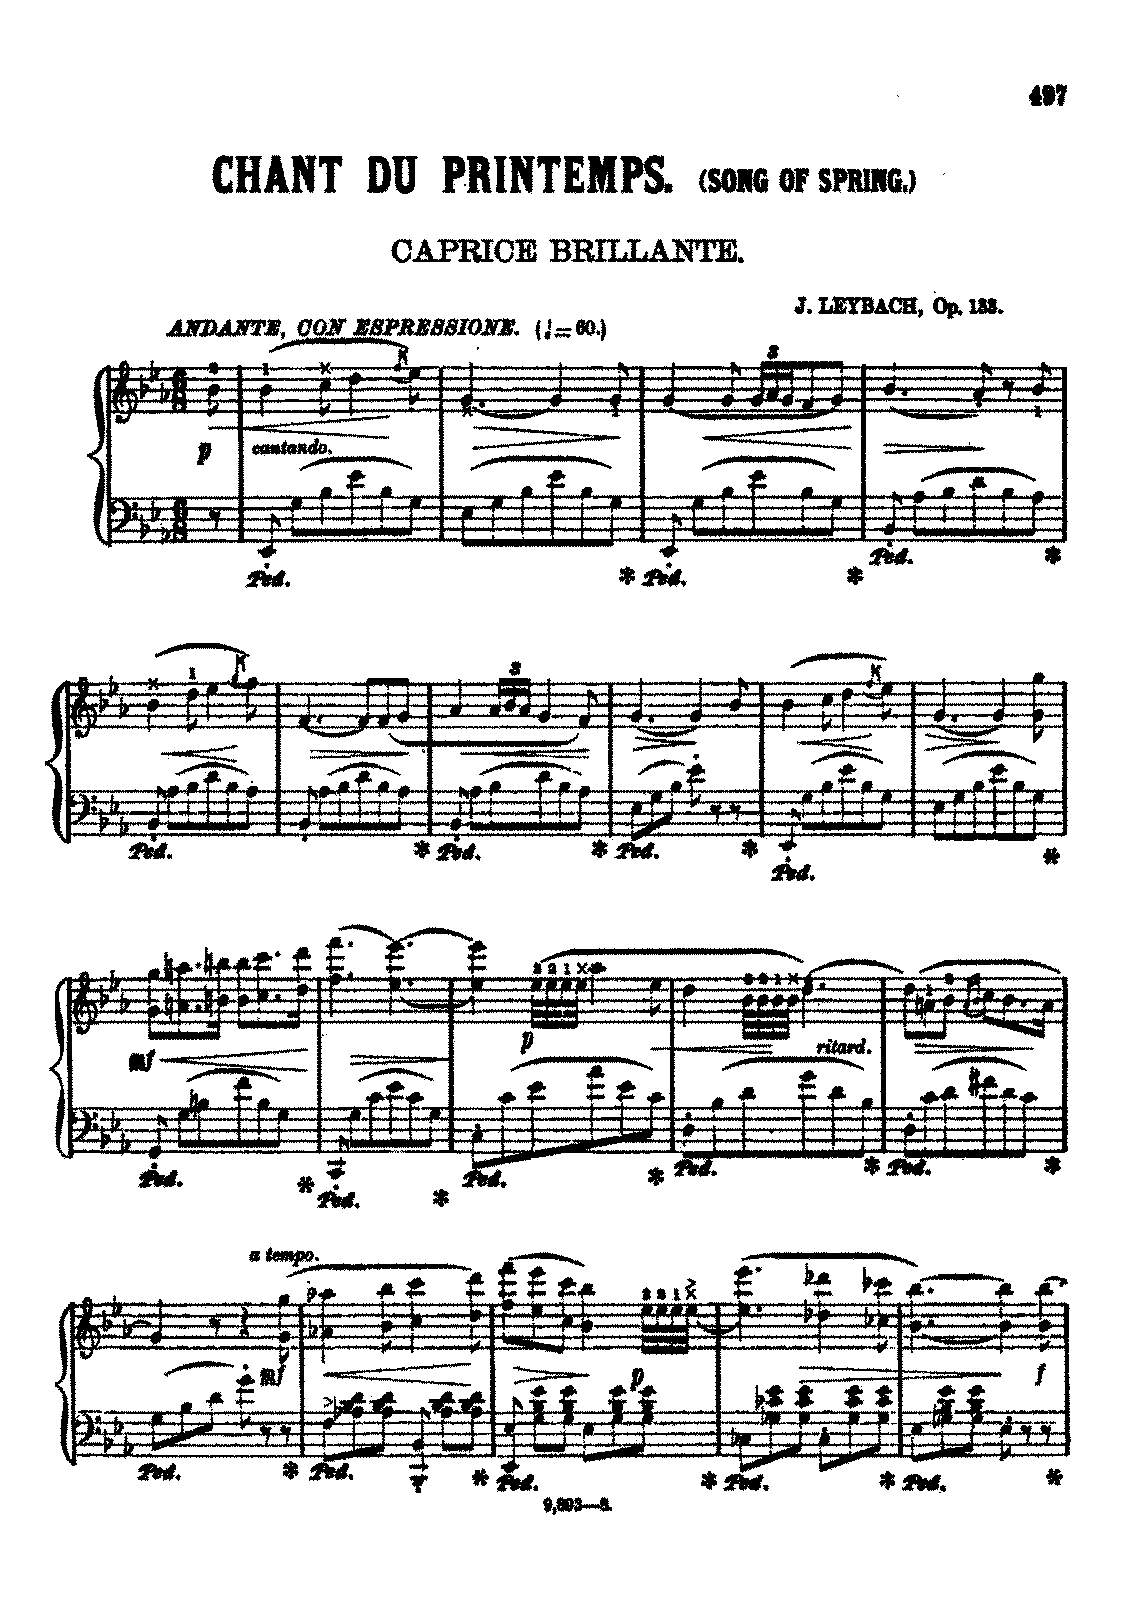 PMLP345012-Leybach - 133 Caprice Brillante op 133 Chant du Printemps - Resized.pdf